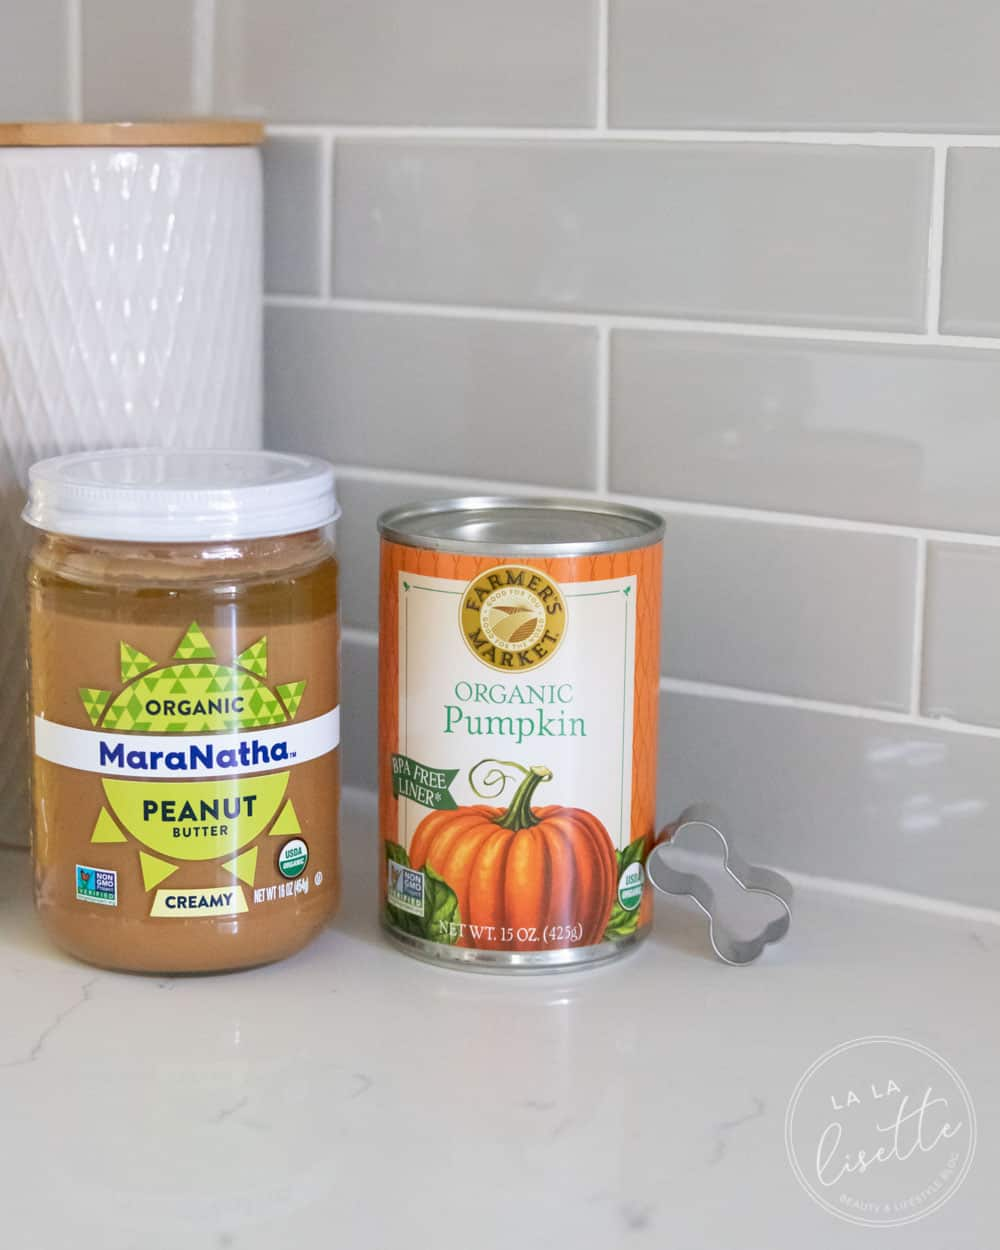 organic peanut butter and organic pumpkin with bone-shaped cookie cutter